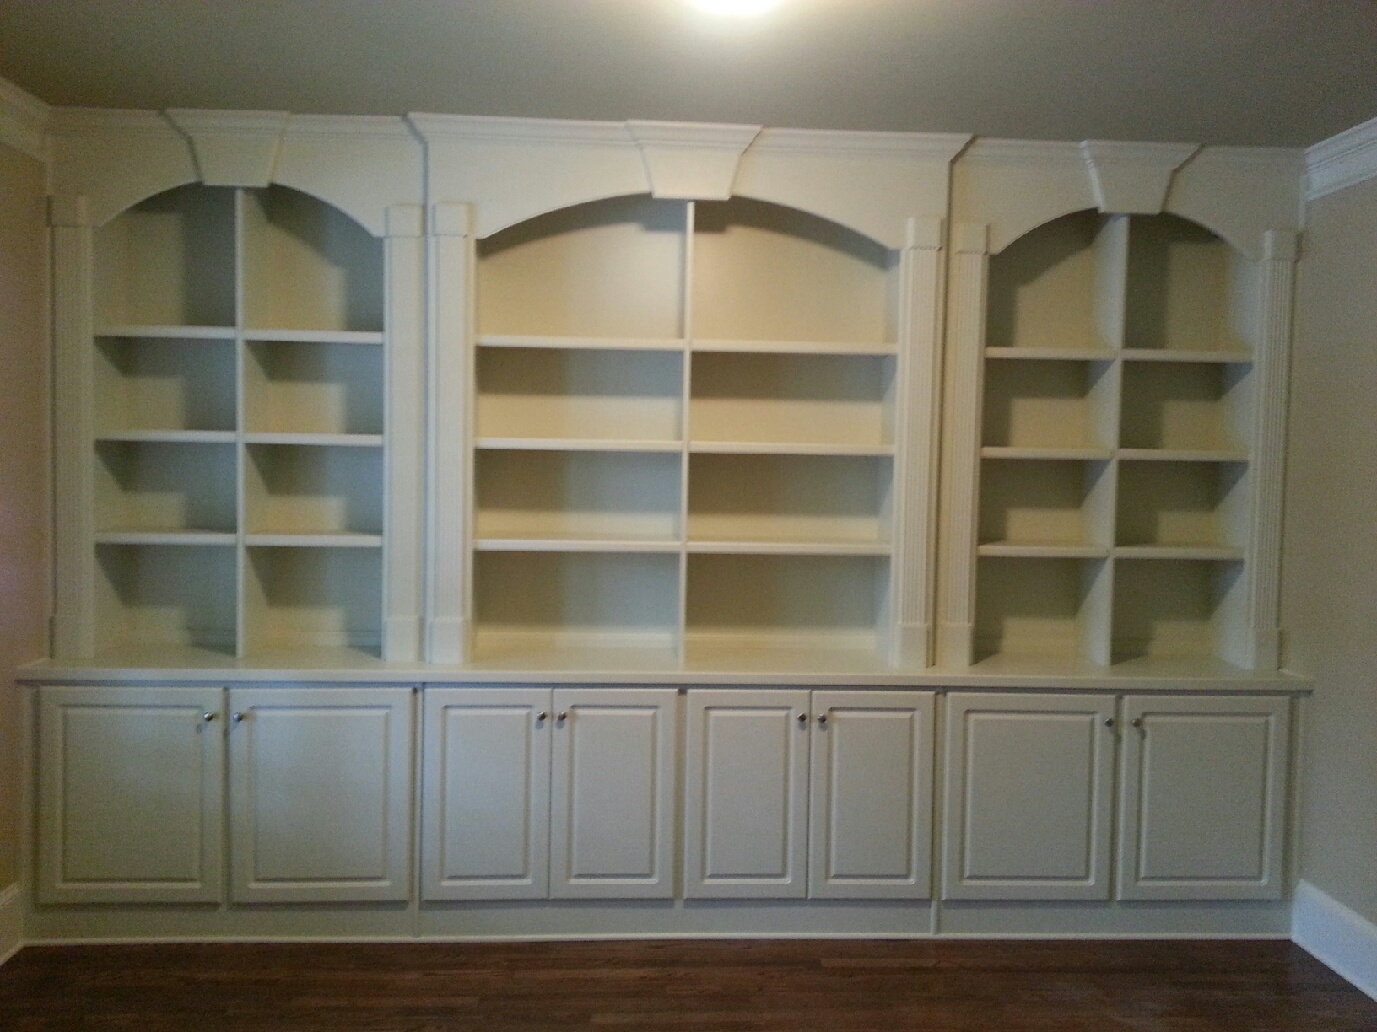 Bookcases in Braselton, GA